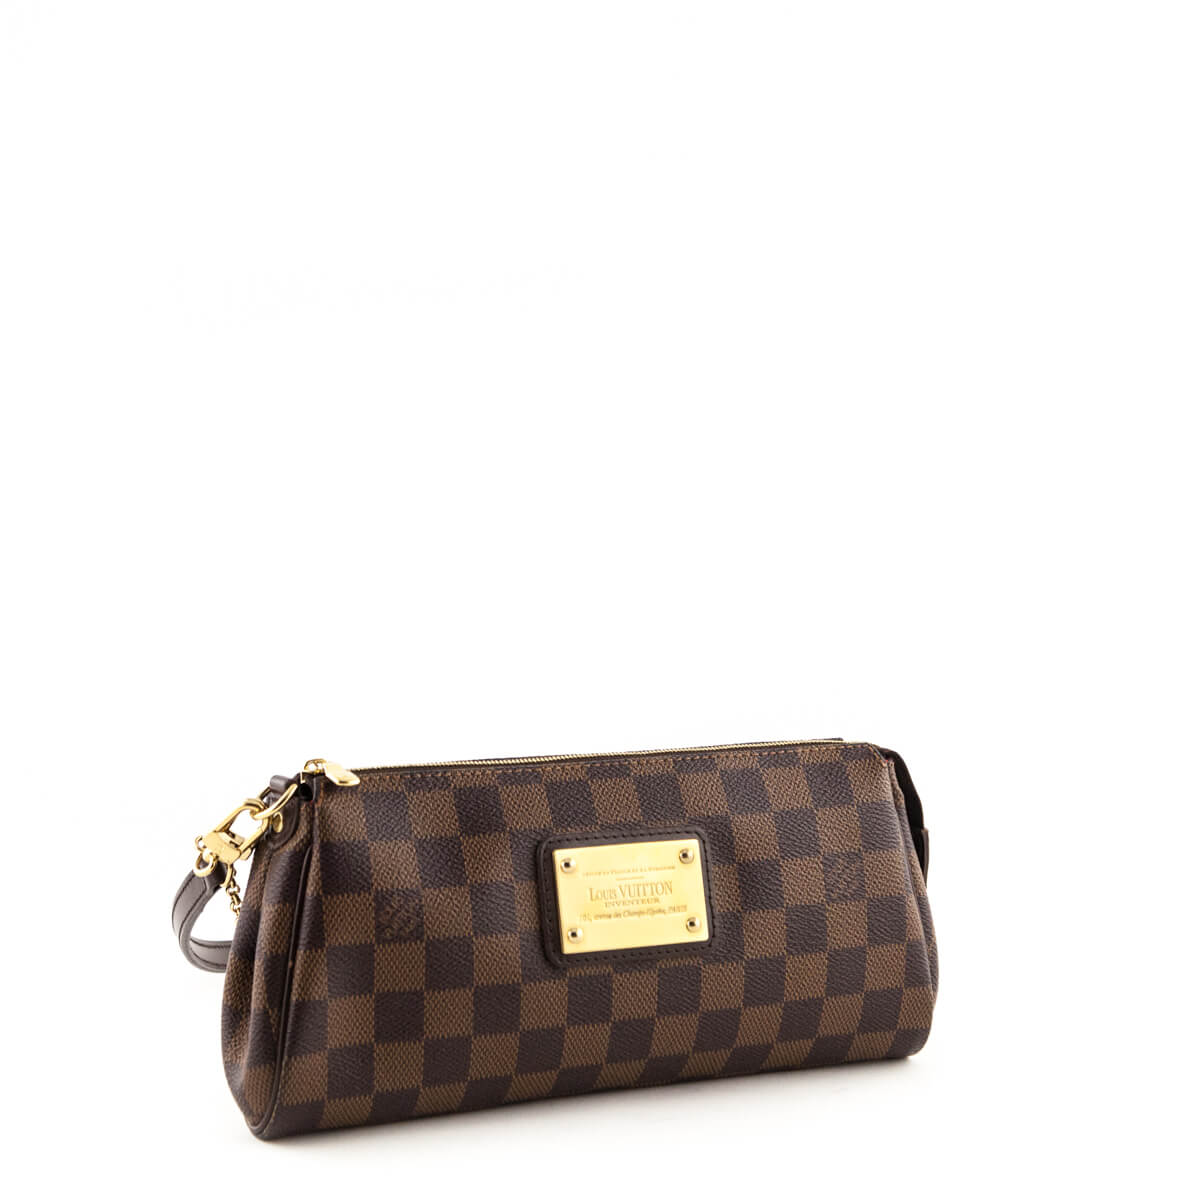 855854c3e772 ... Louis Vuitton Damier Ebene Eva Clutch - LOVE that BAG - Preowned  Authentic Designer Handbags ...